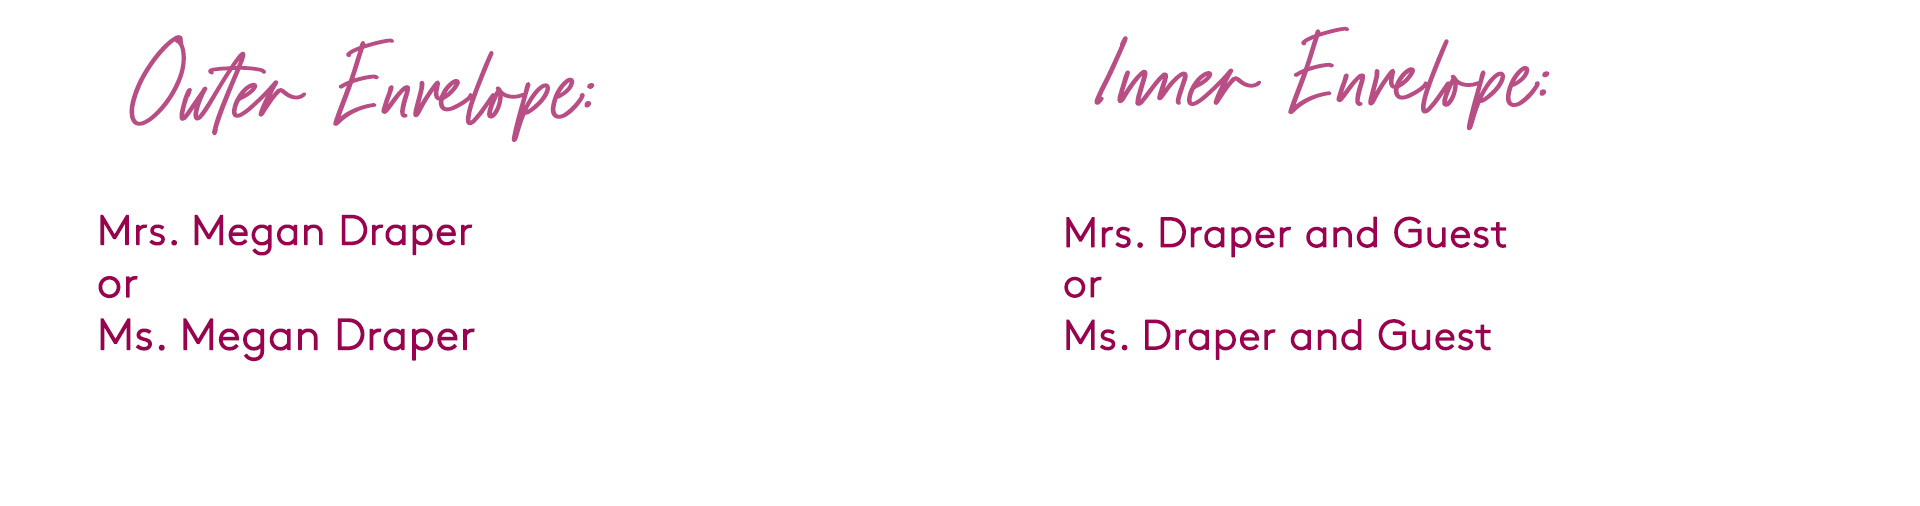 how to address wedding invitation addressed to a divorced woman (with a guest)